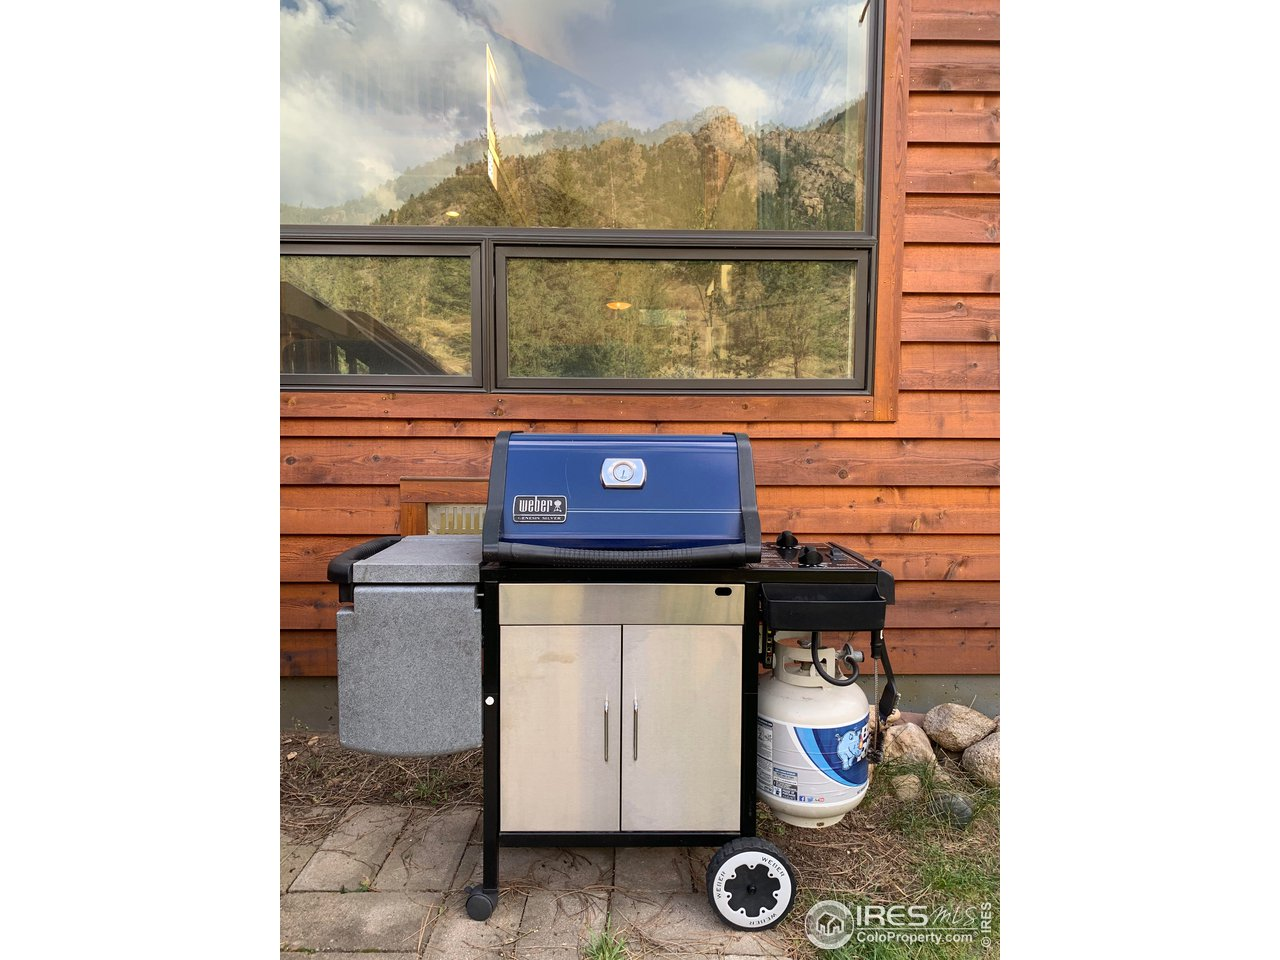 propane gas grill is included with this sale (ready for a cookout?)